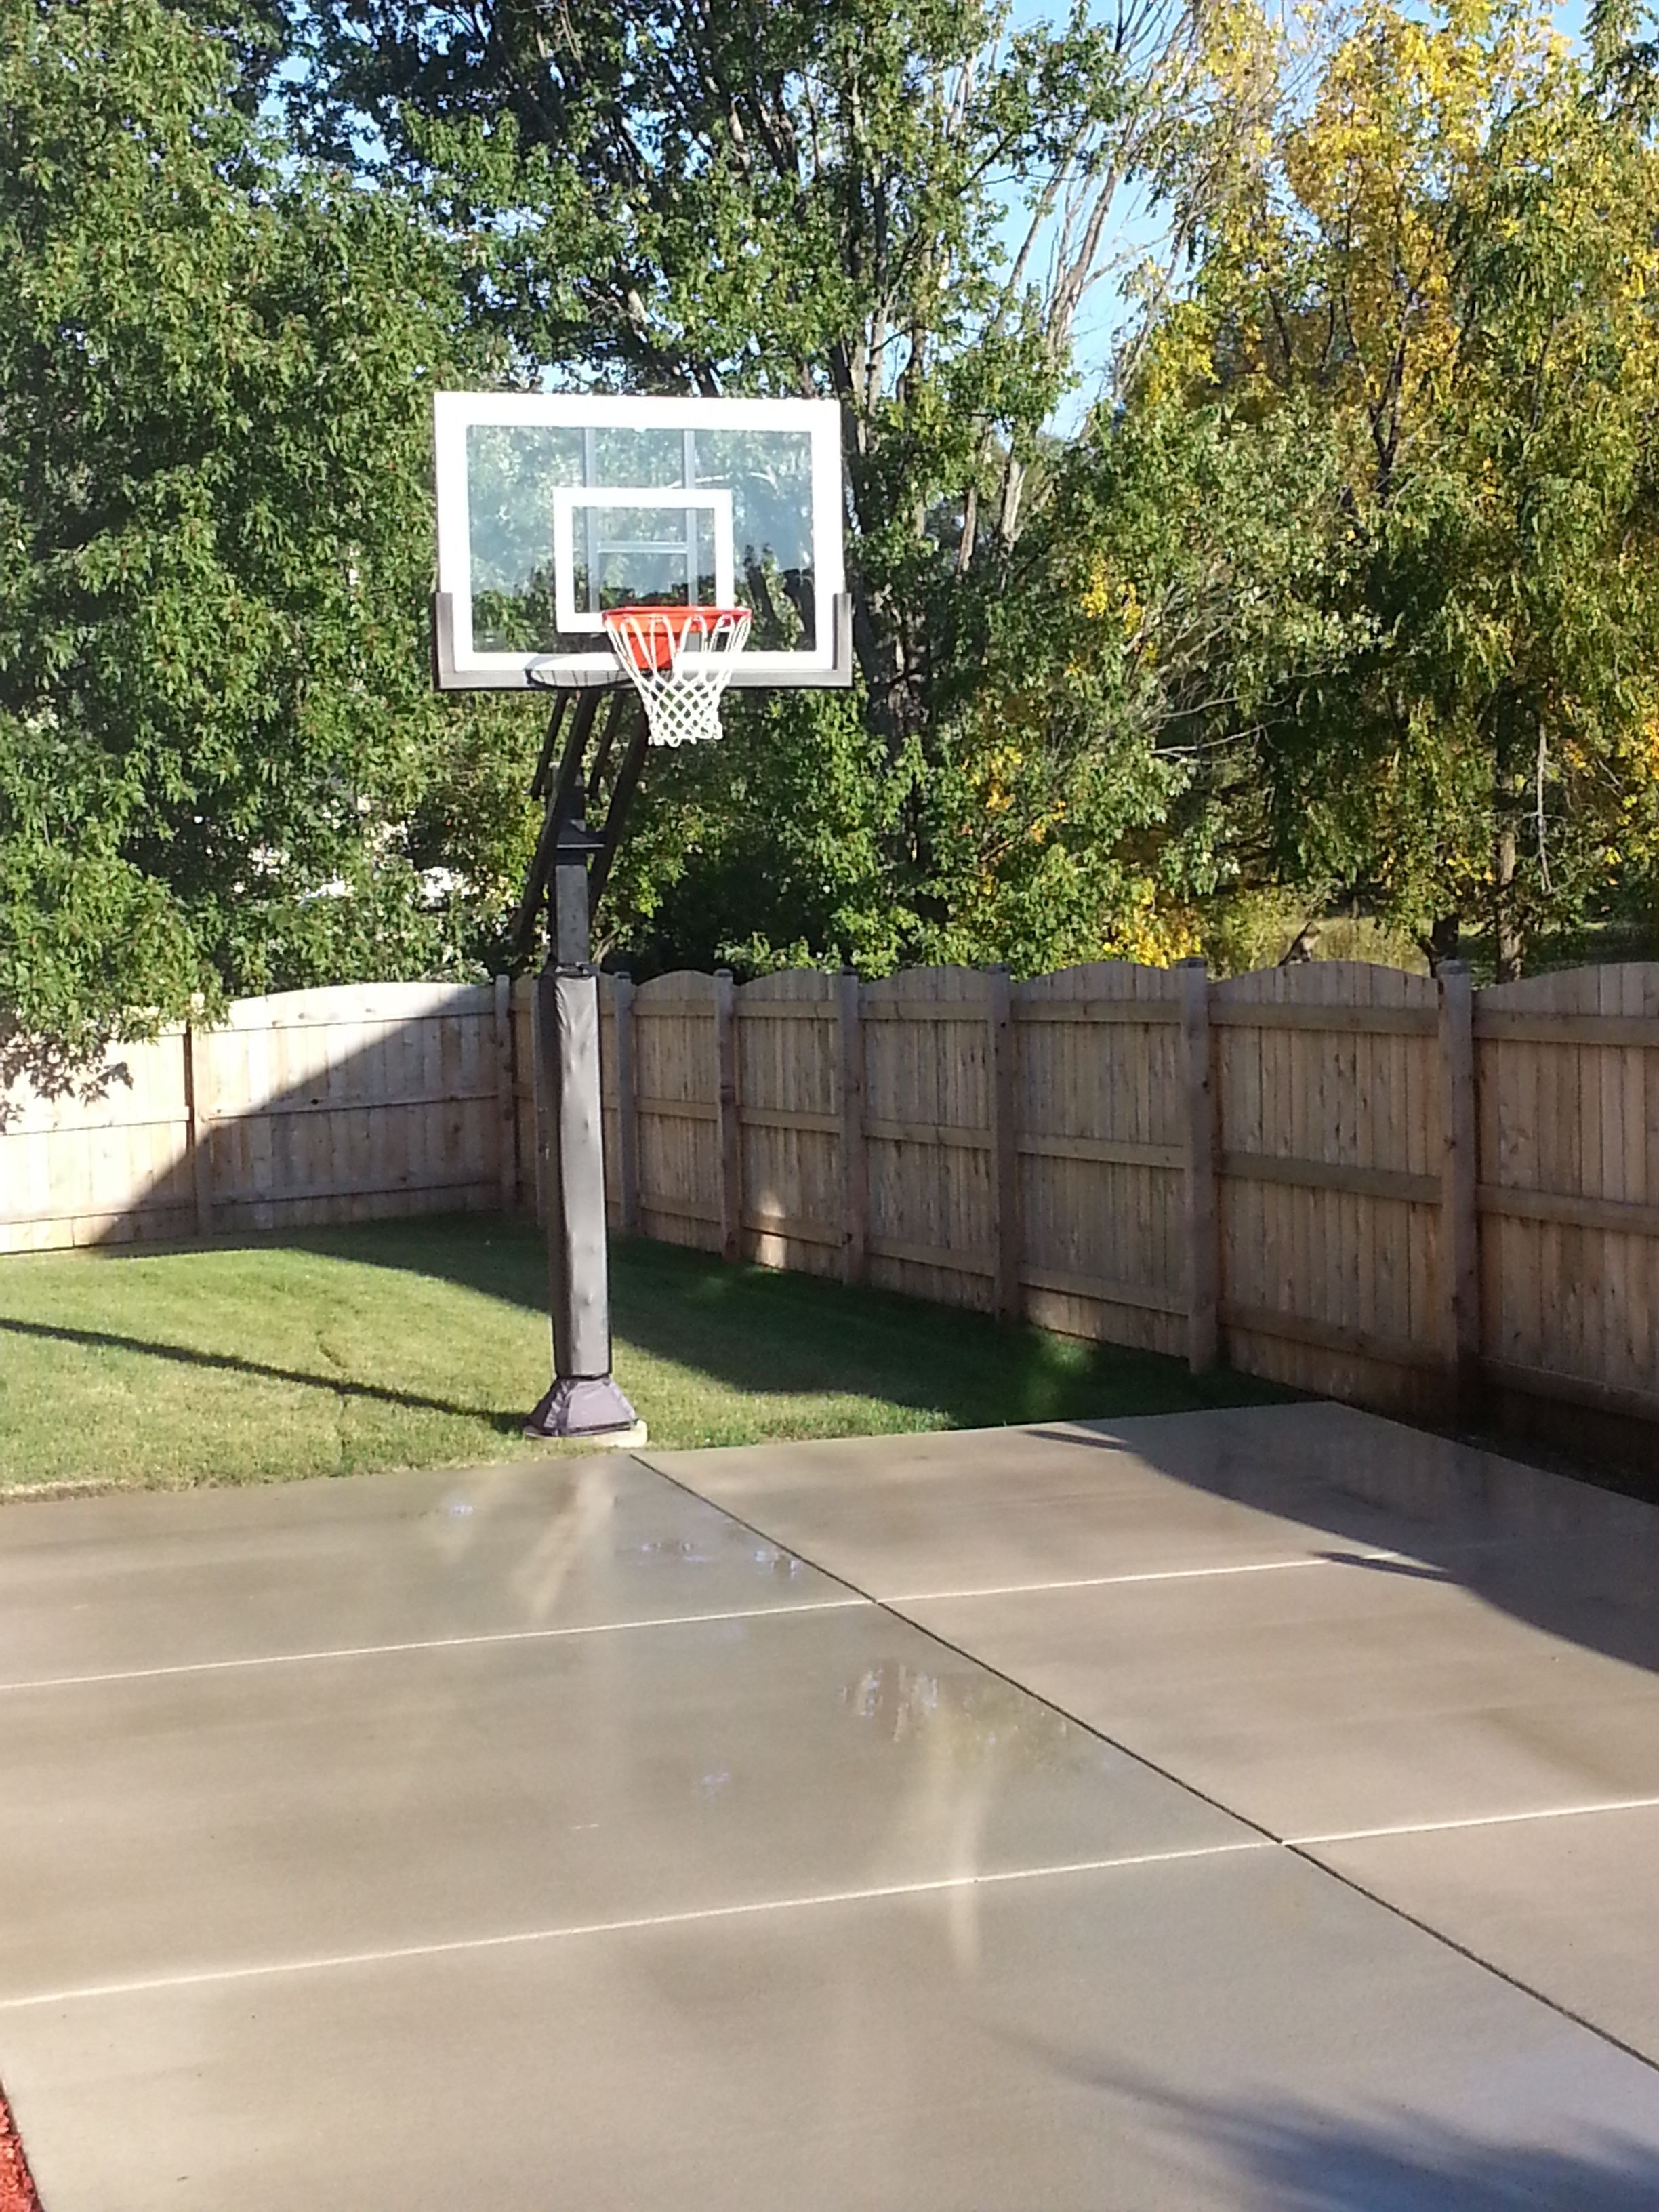 the backyard fence encompasses this pro dunk silver basketball